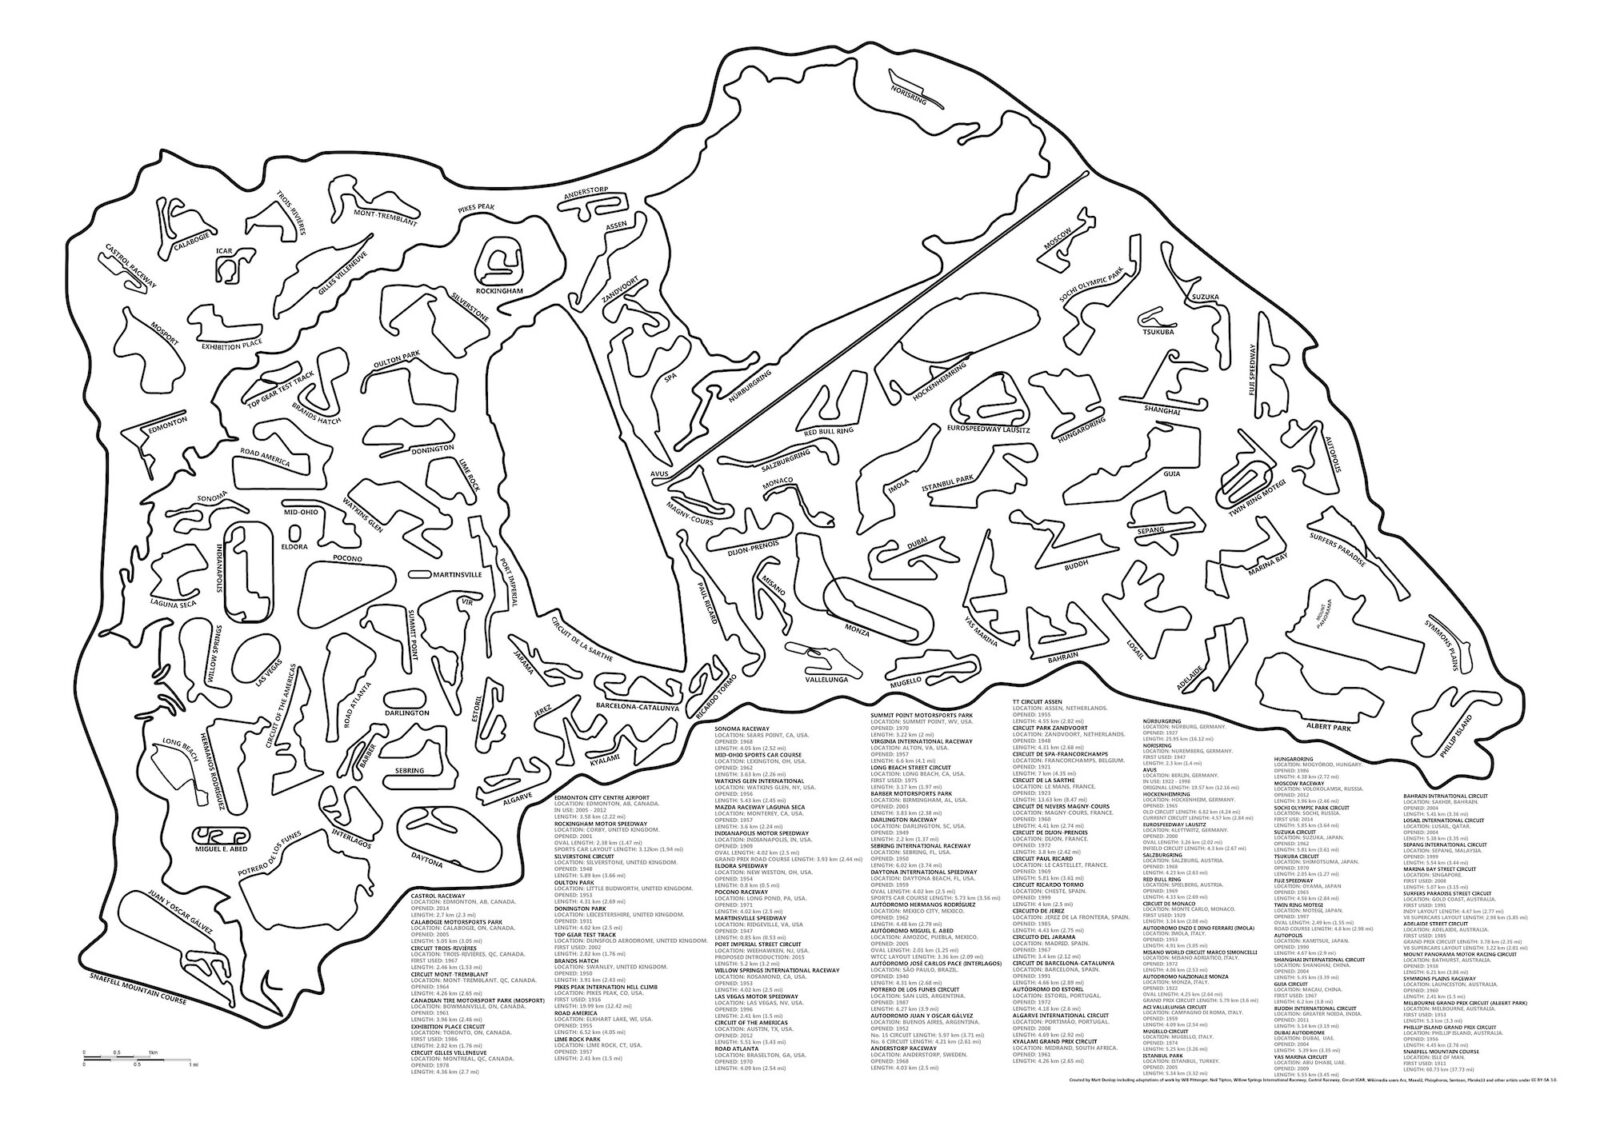 Race Tracks Of The World Thumbnail 1600x1126 - The Great Race Tracks Of The World